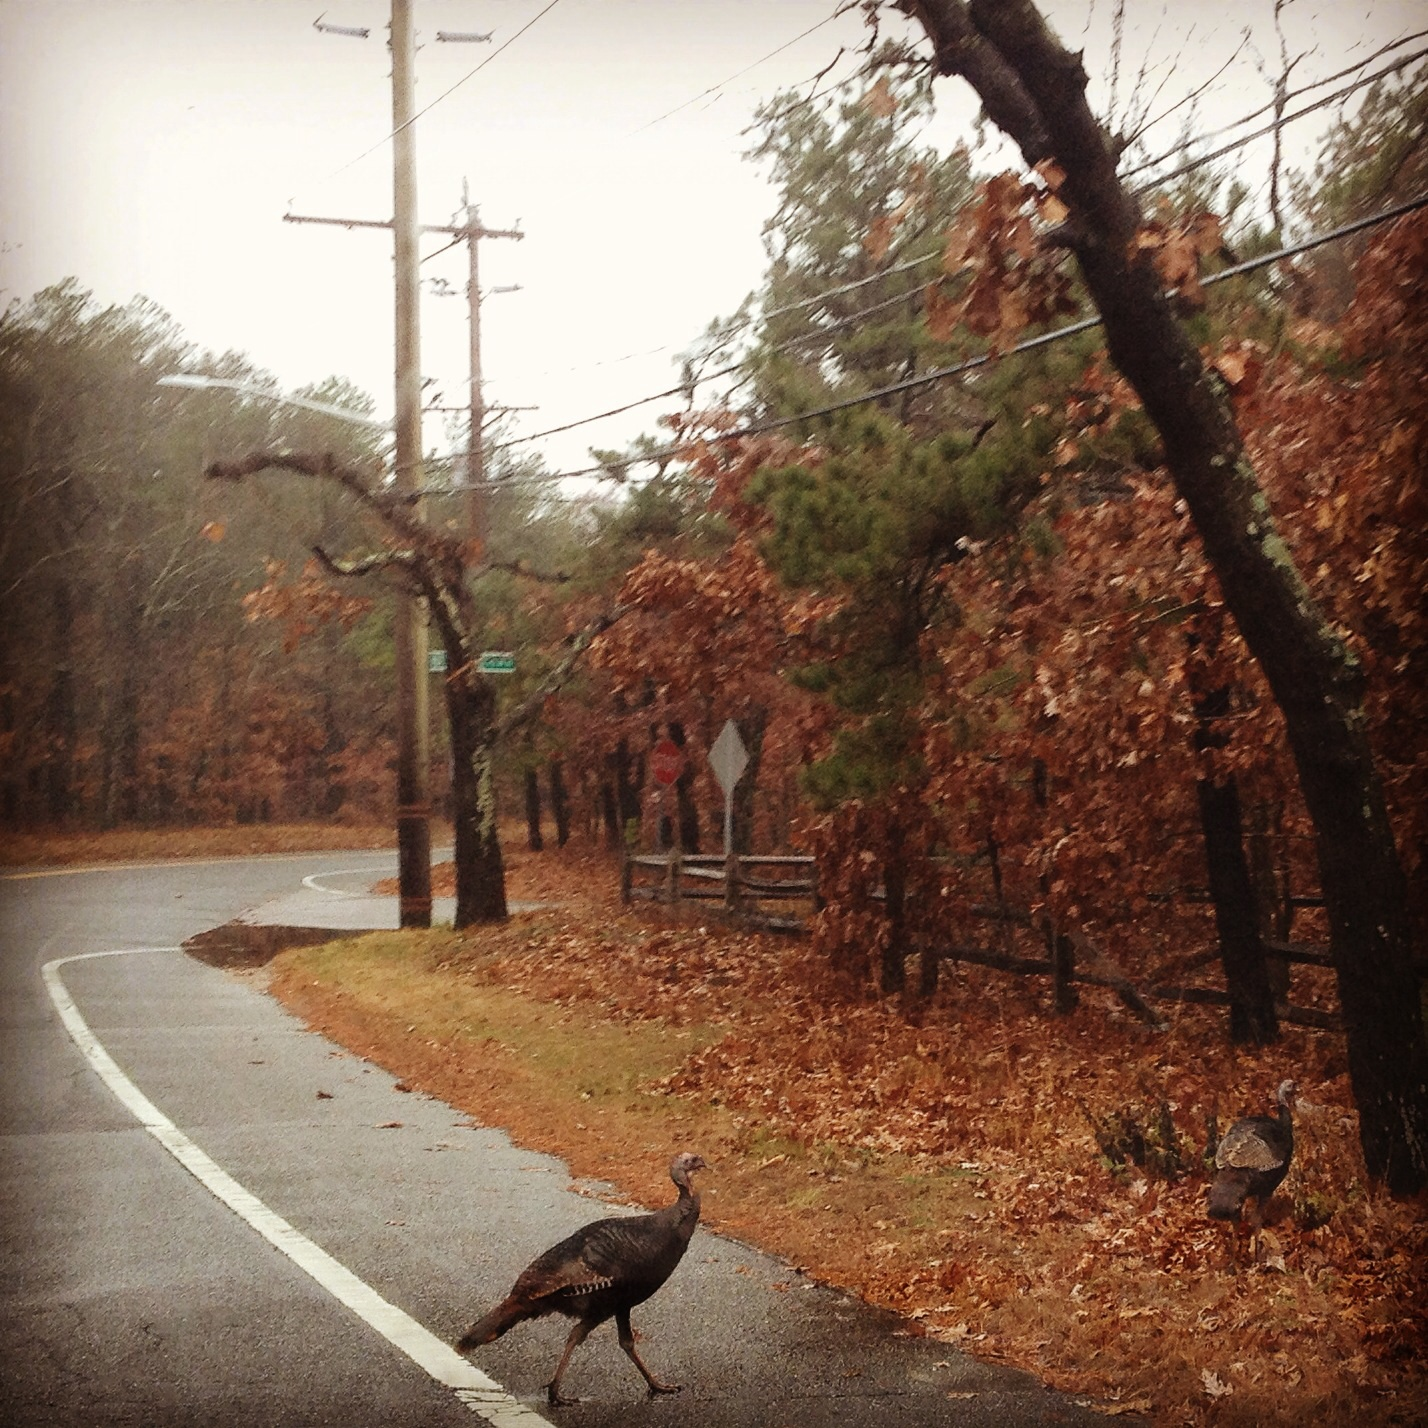 Wild Turkey Crossing - Long Island, NY